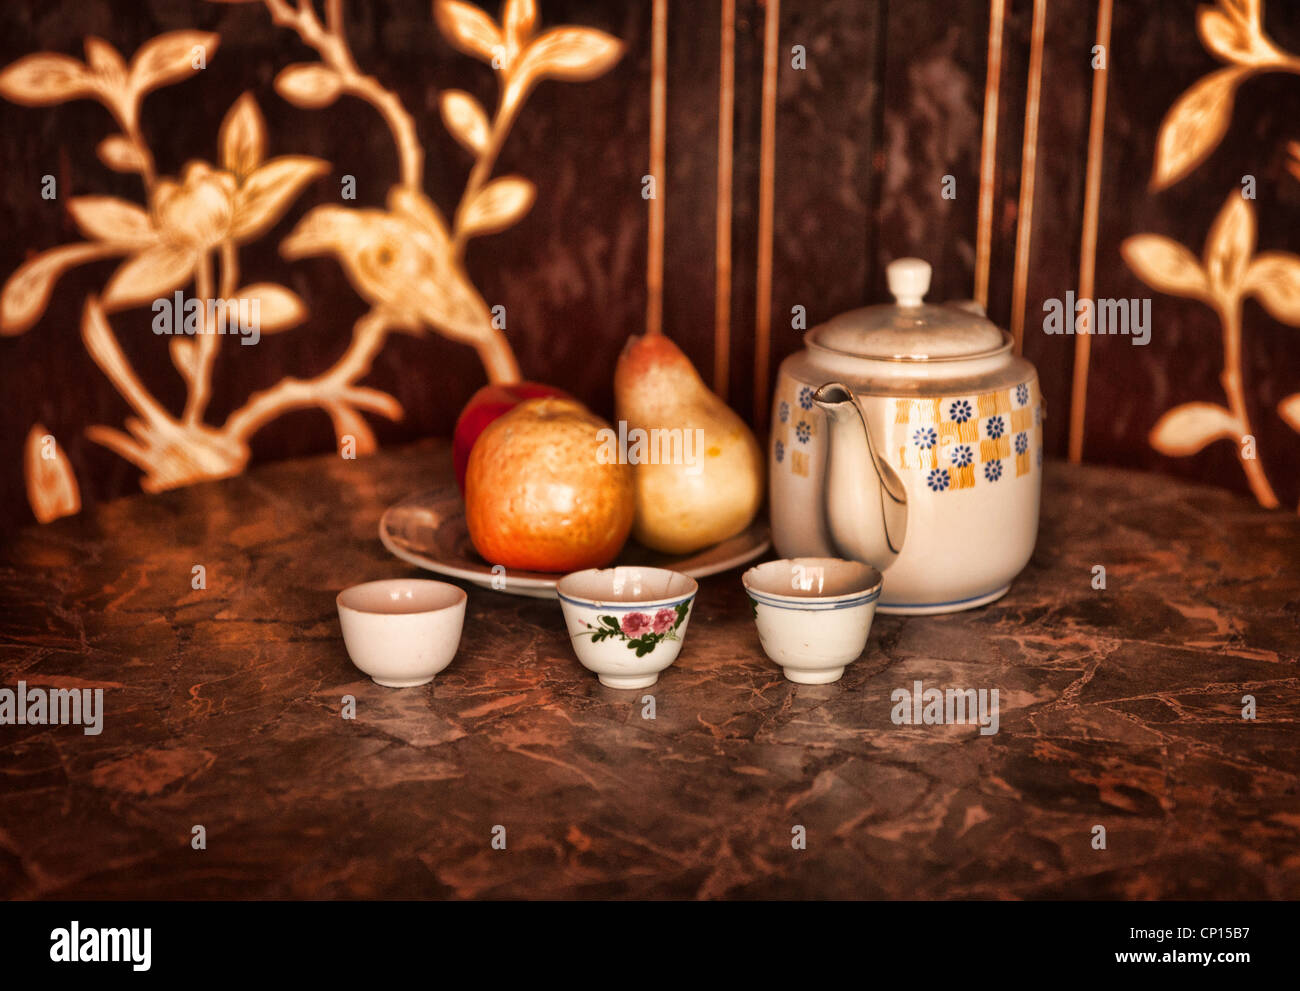 still life low key image of a tea pot cups and fruit - Stock Image